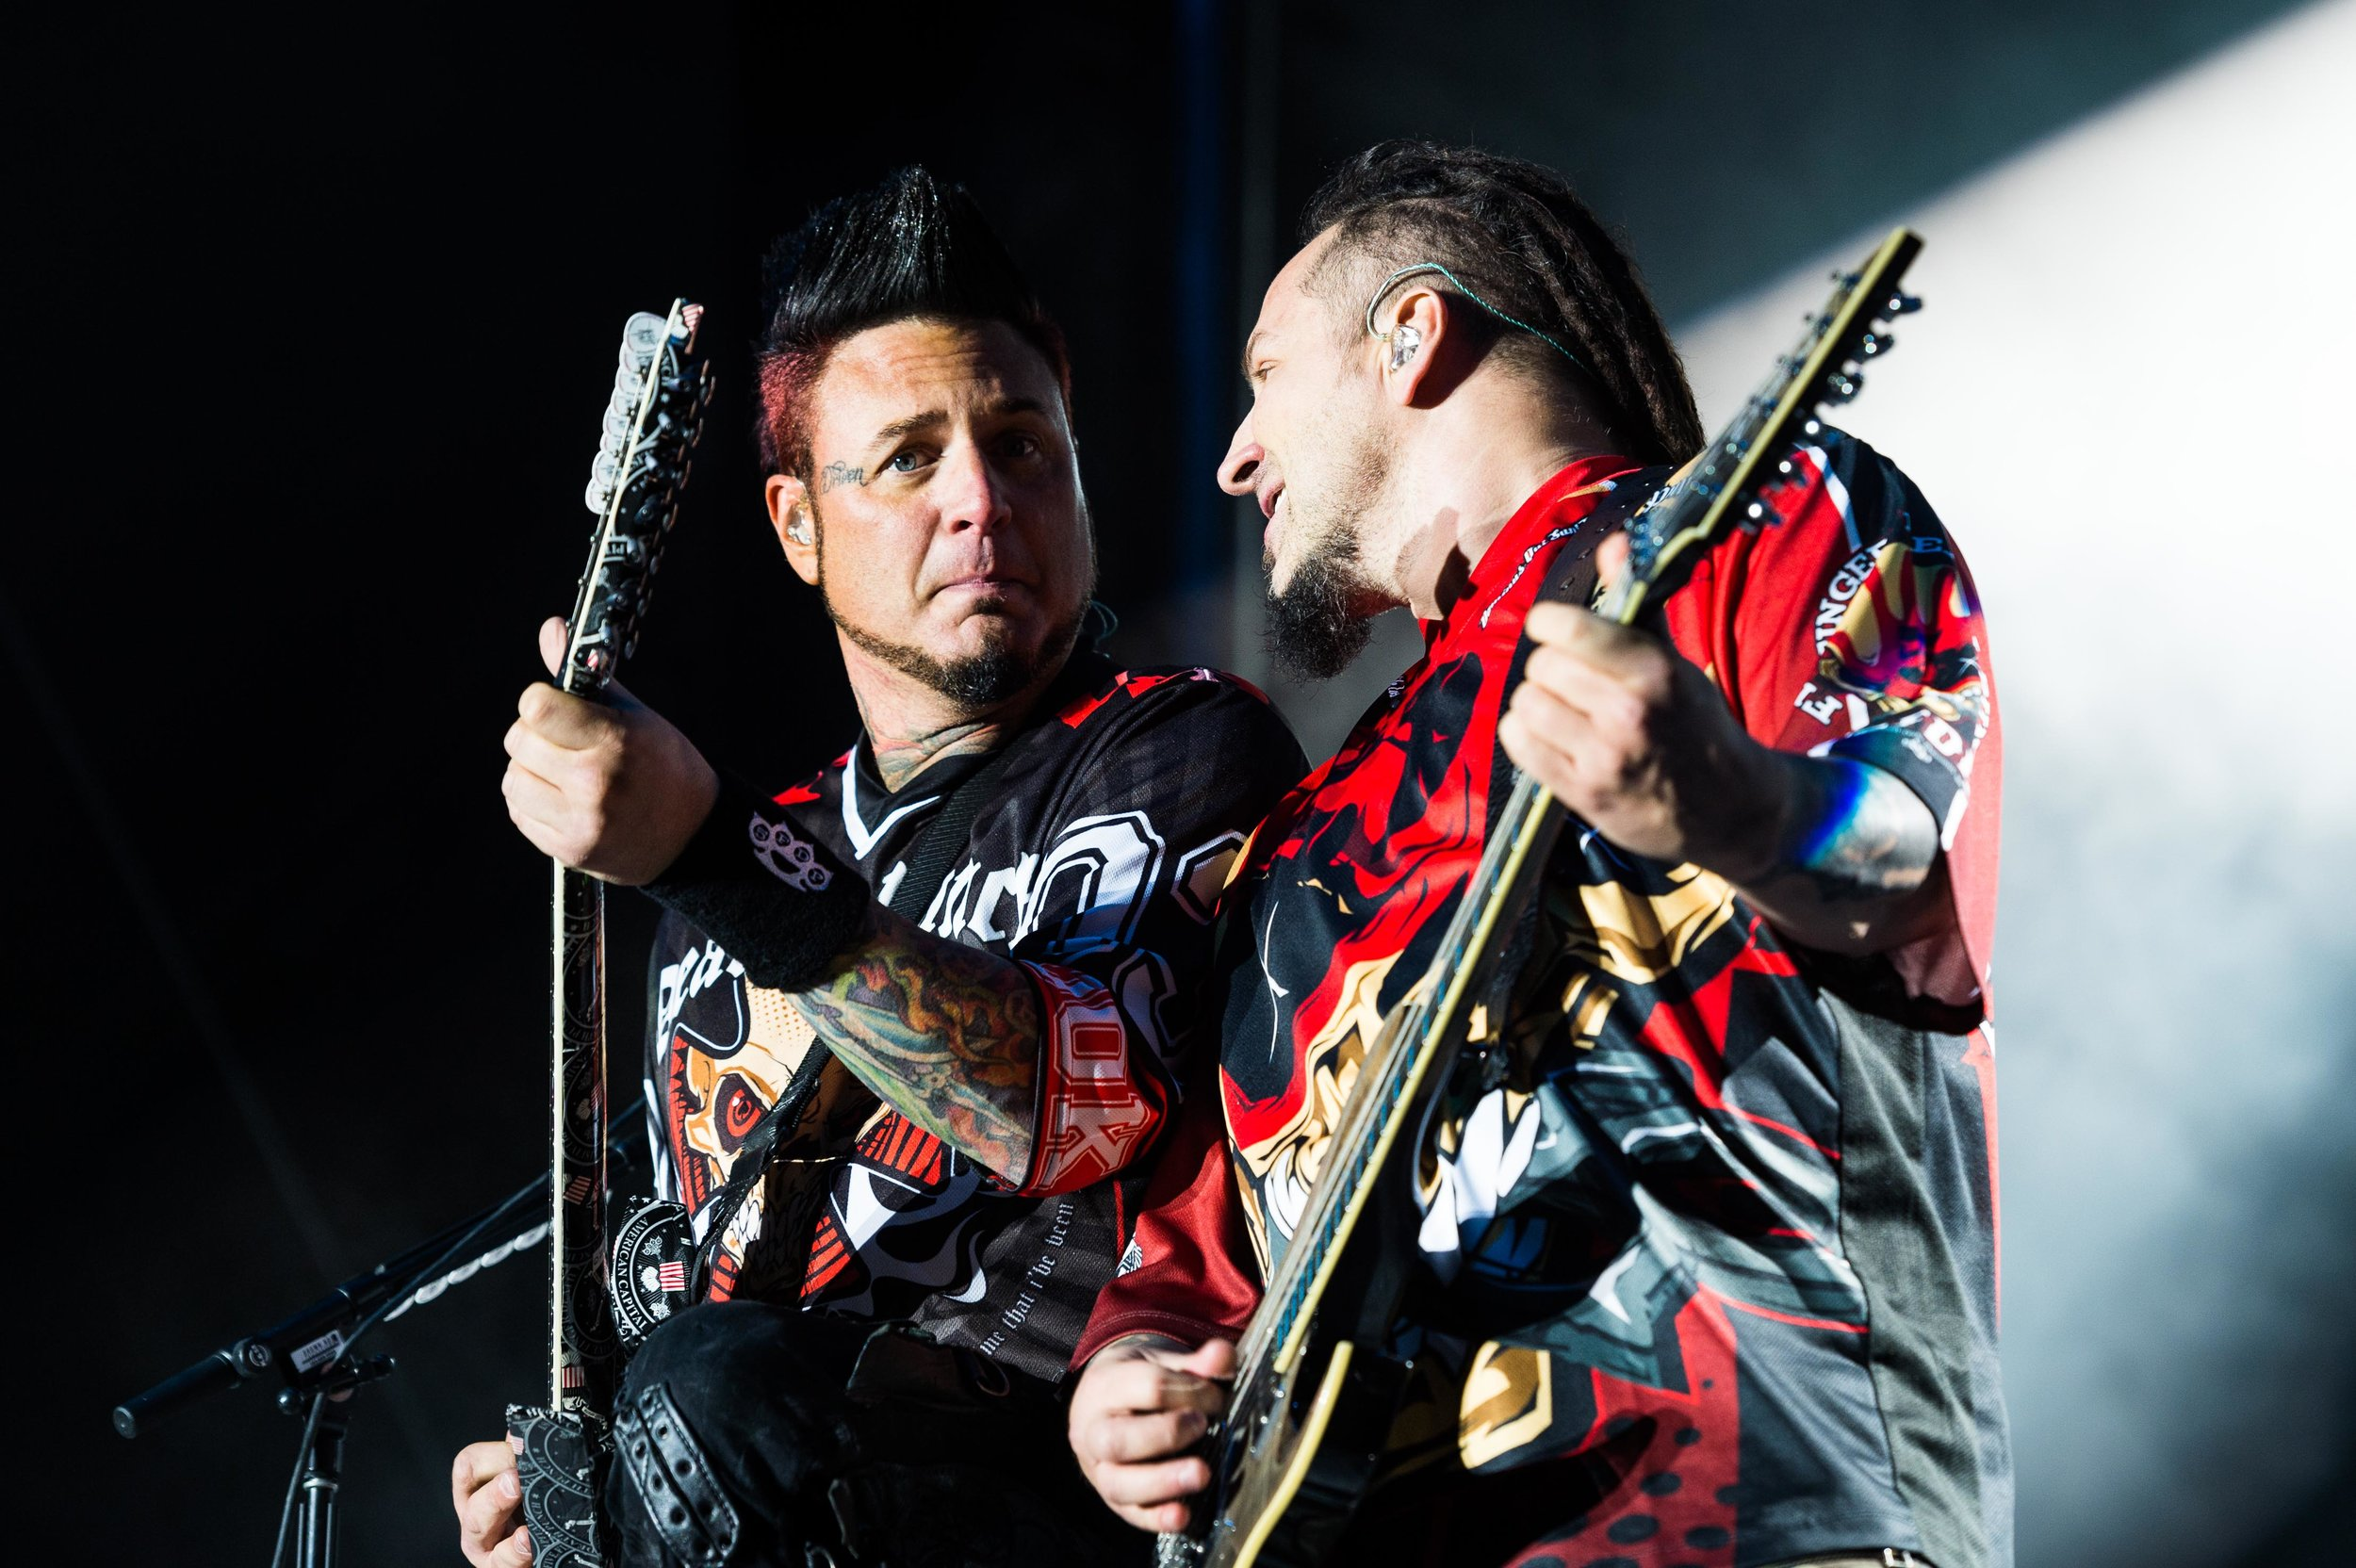 Five Finger Death Punch Sep 30 2017-29.jpg